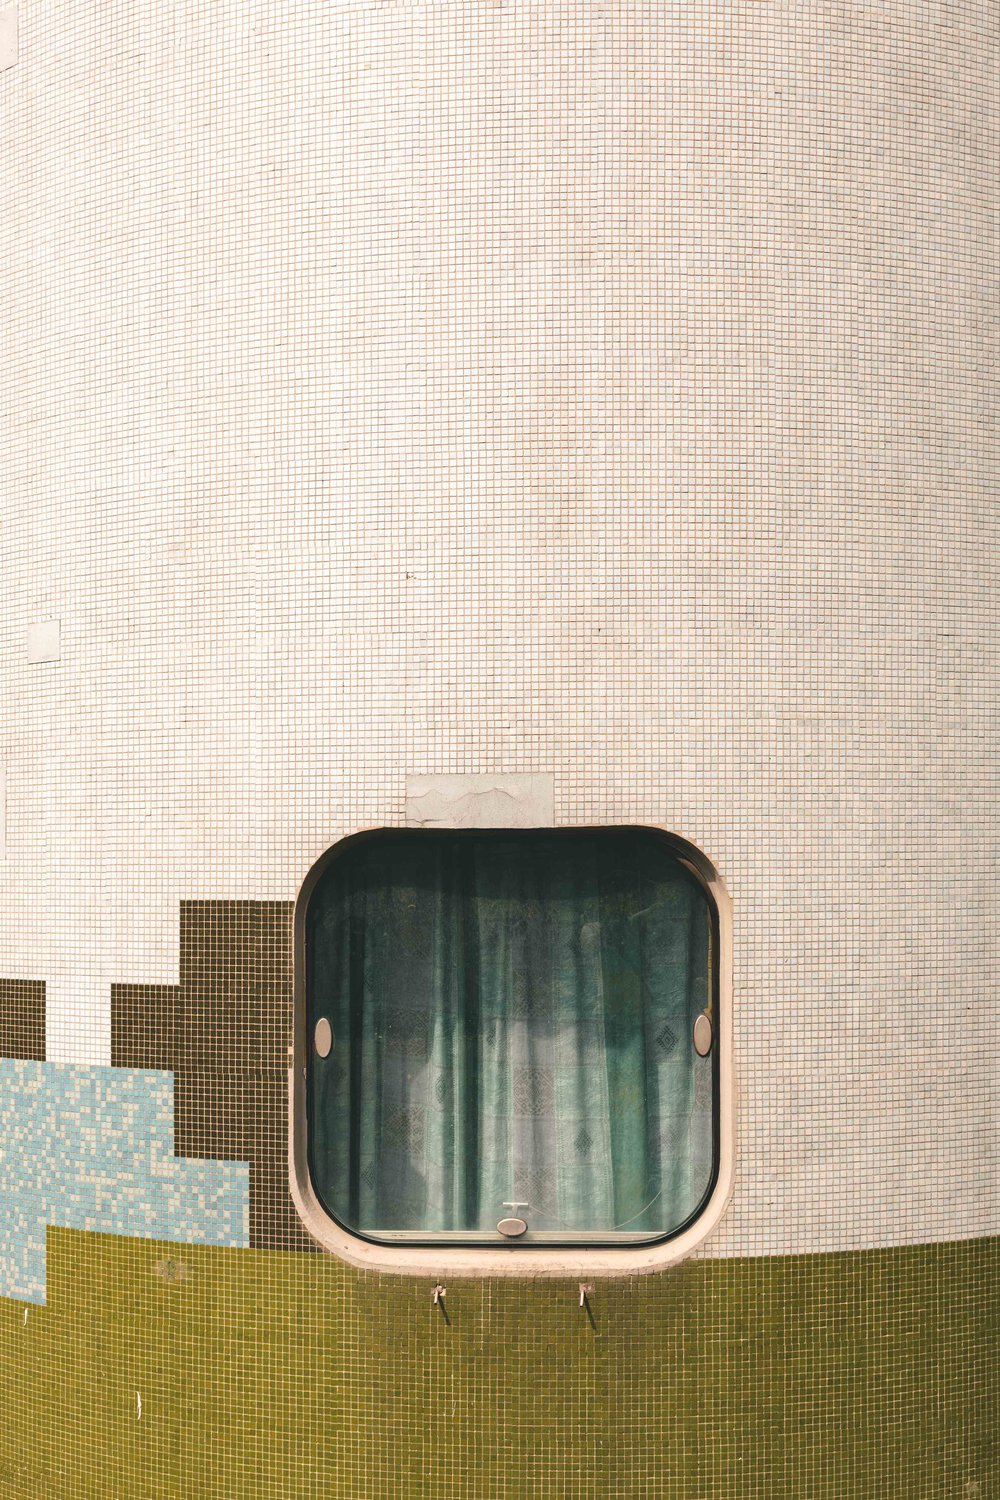 Architecture photograph detail series of the Tours Aillaud, Nanterre. Square opening, with mosaic tile frontage. By Daniel Walker Photography